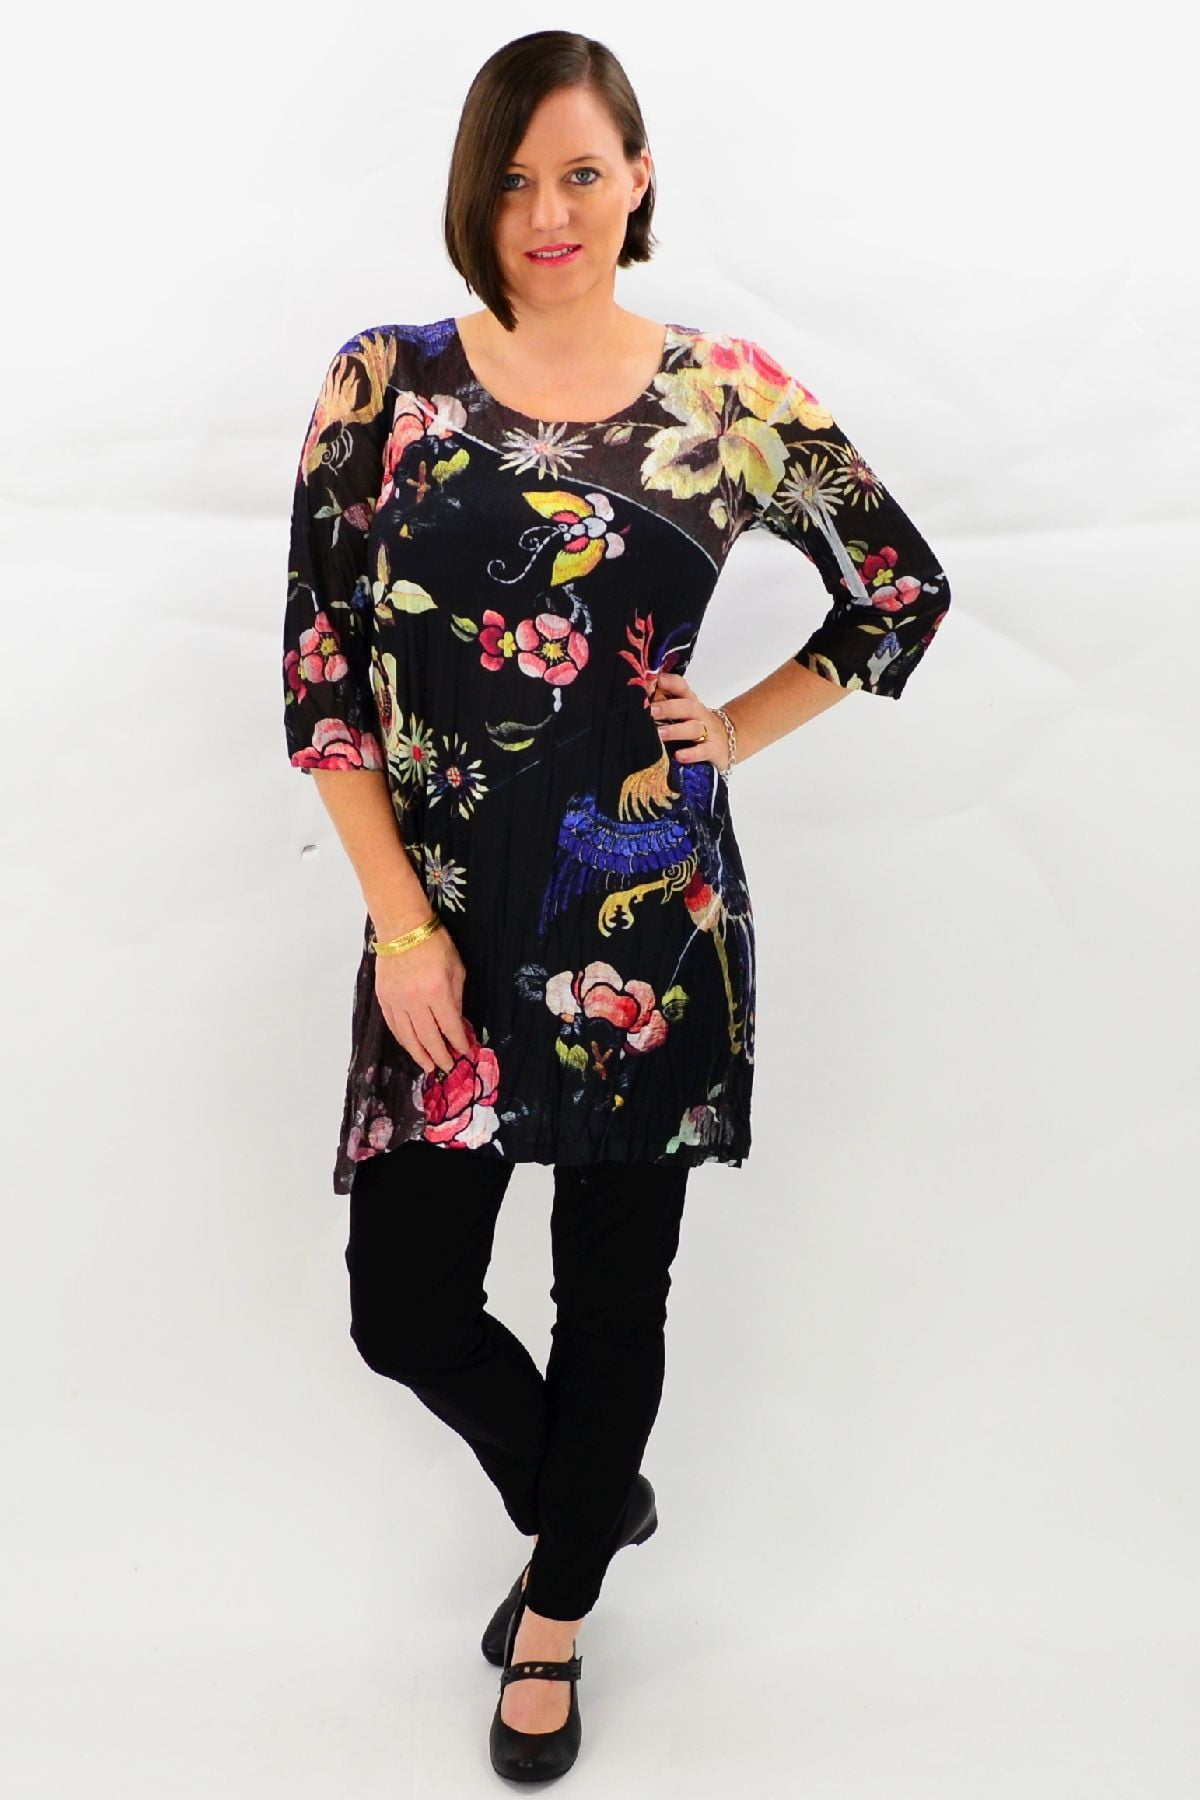 Frans Flower Garden Tunic Top | I Love Tunics | Tunic Tops | Tunic | Tunic Dresses  | womens clothing online